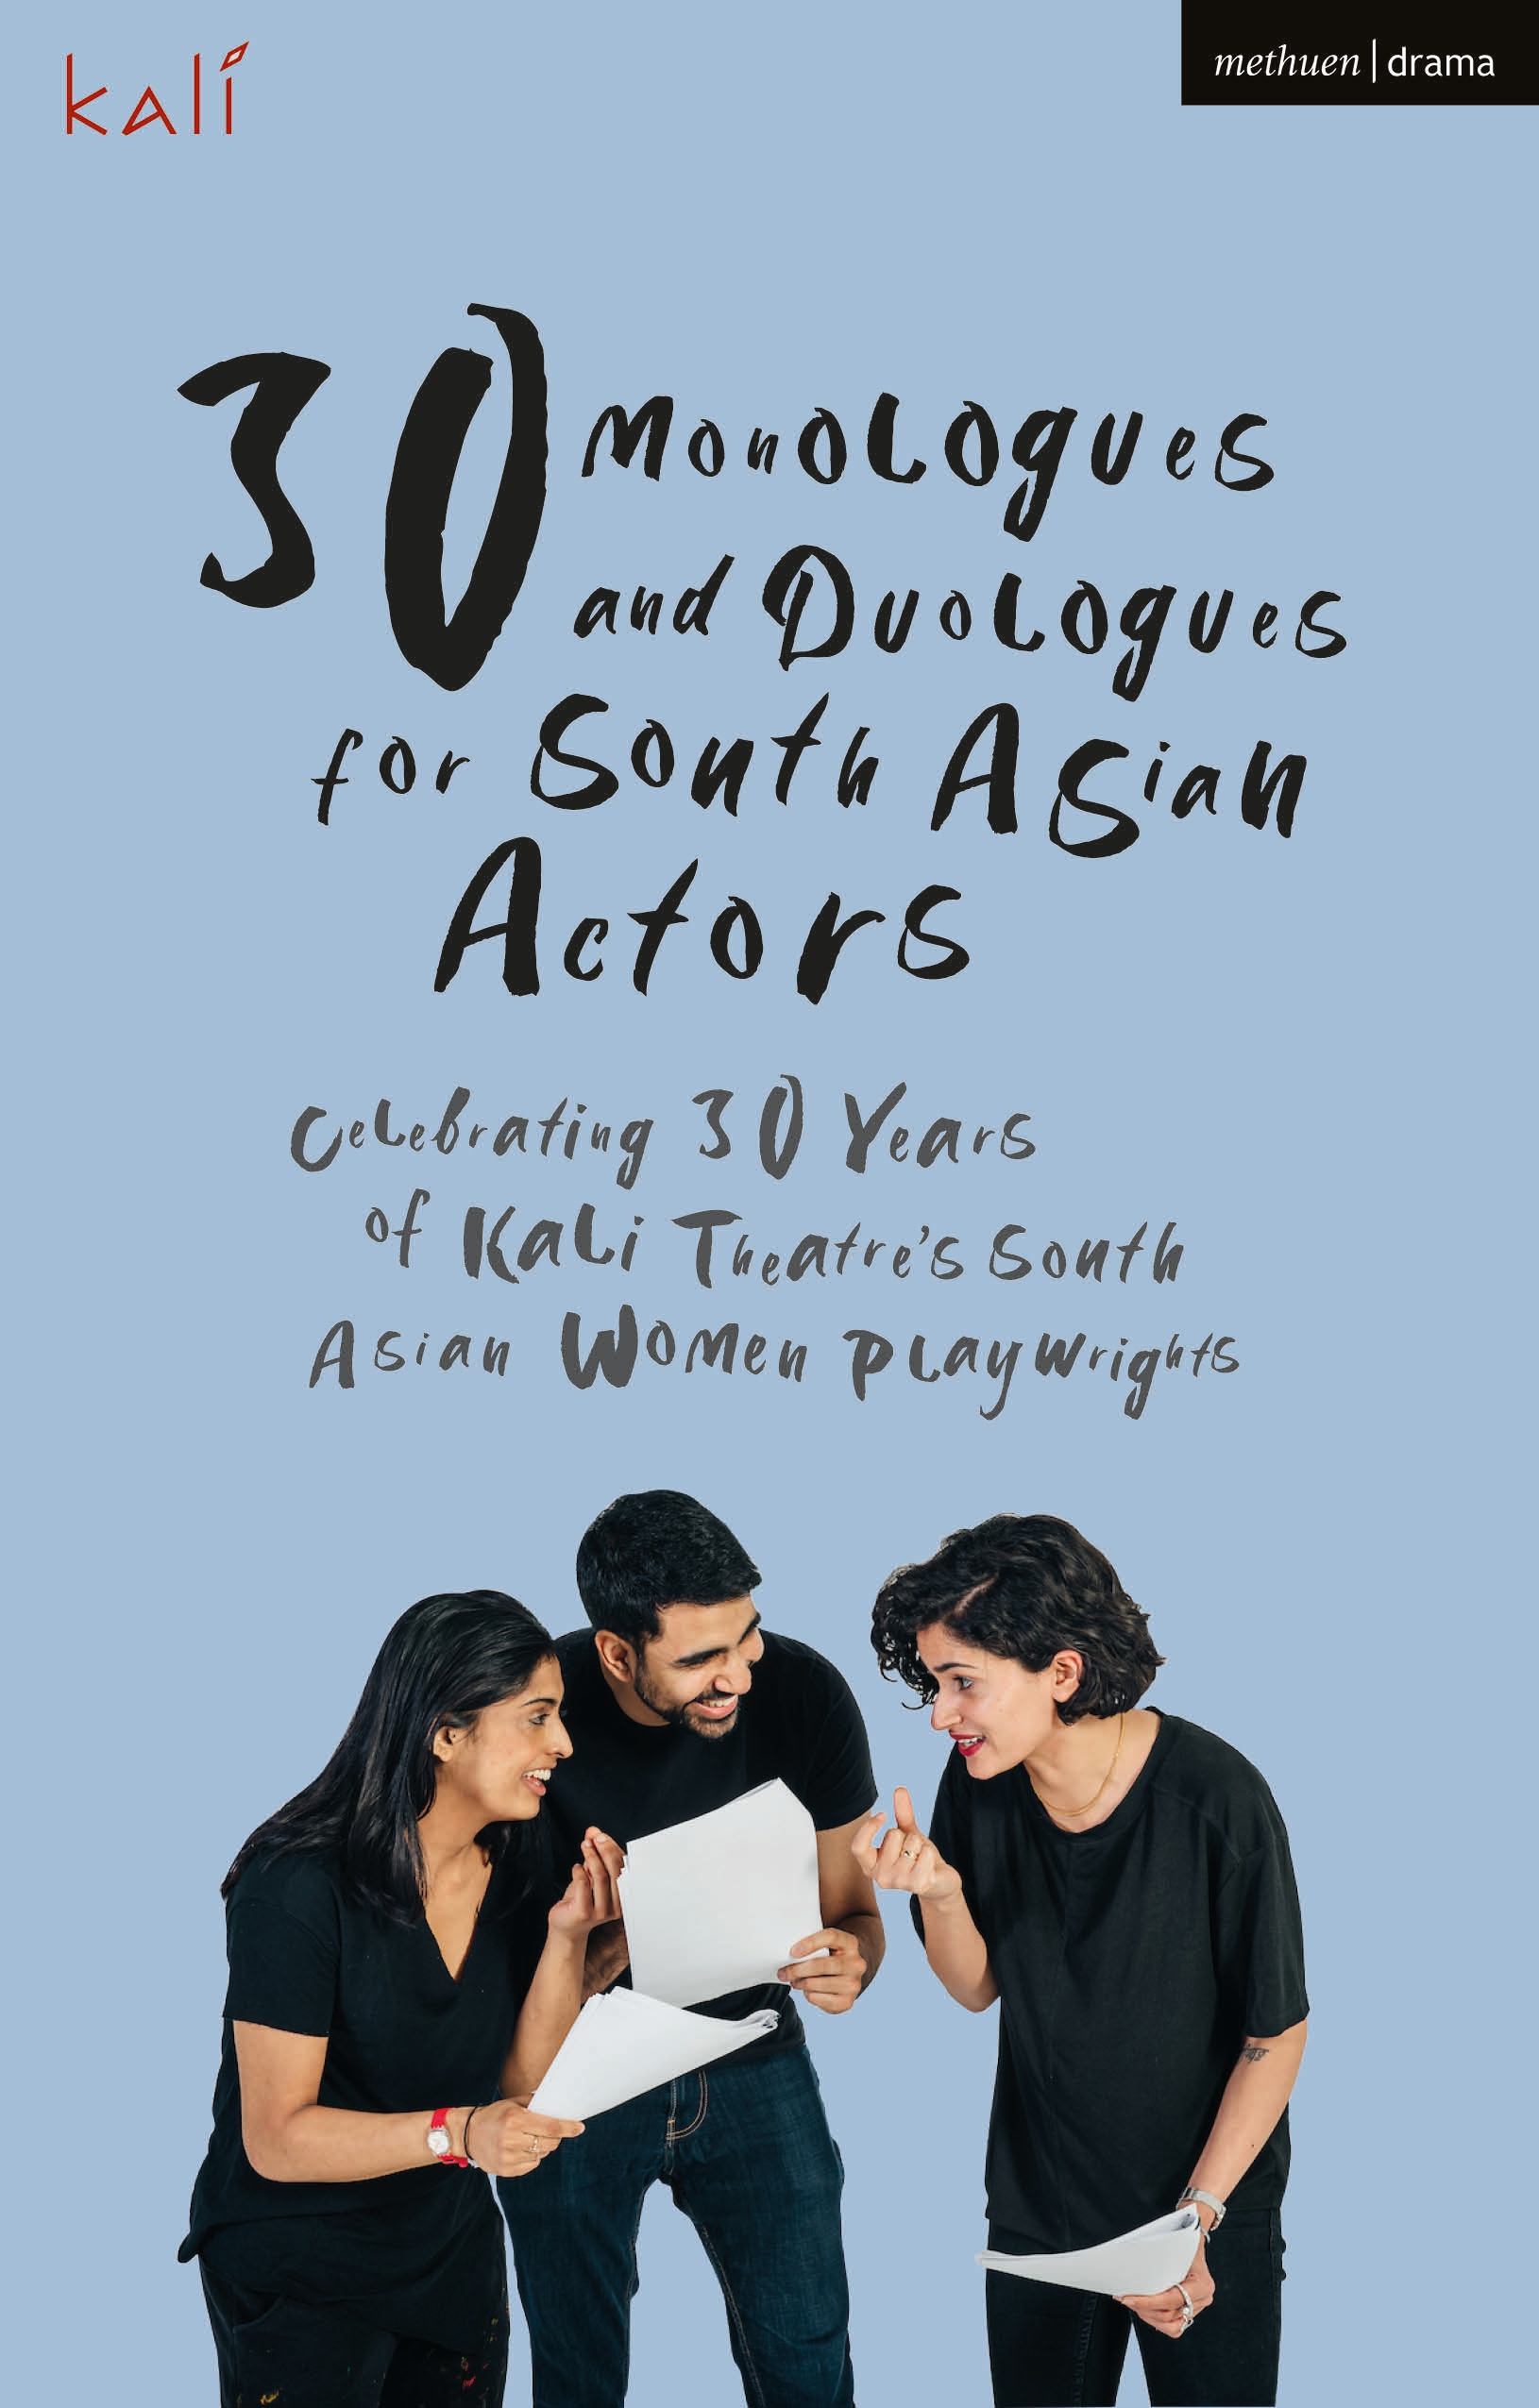 30 Monologues and Duologues for South Asian Actors